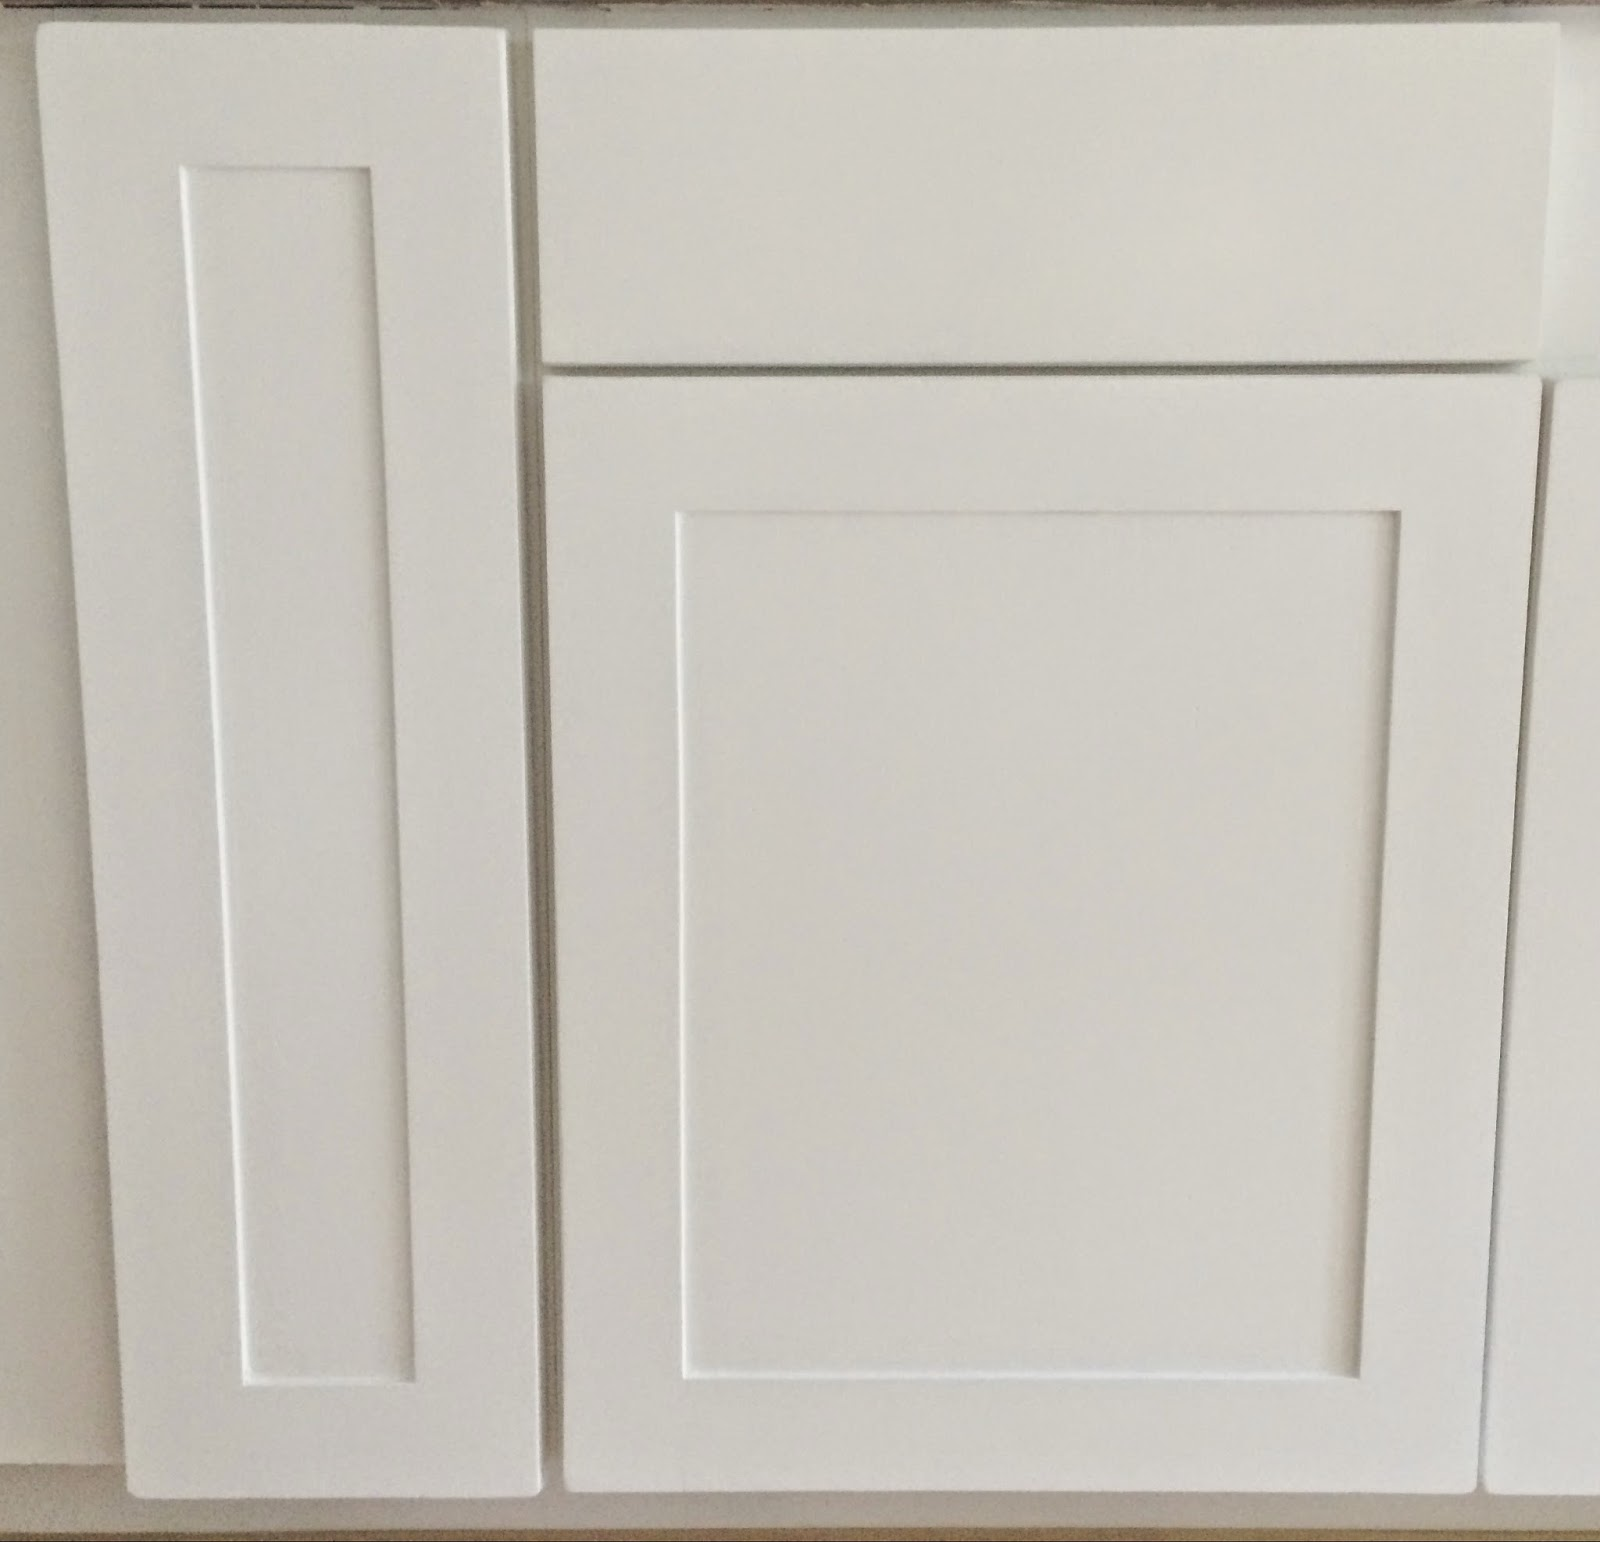 Gentil Enter DIY Shaker Doors! We Have Used This Method On Our Kitchen Doors And  Bathroom Doors, Which You Will See In Different Photos Below.